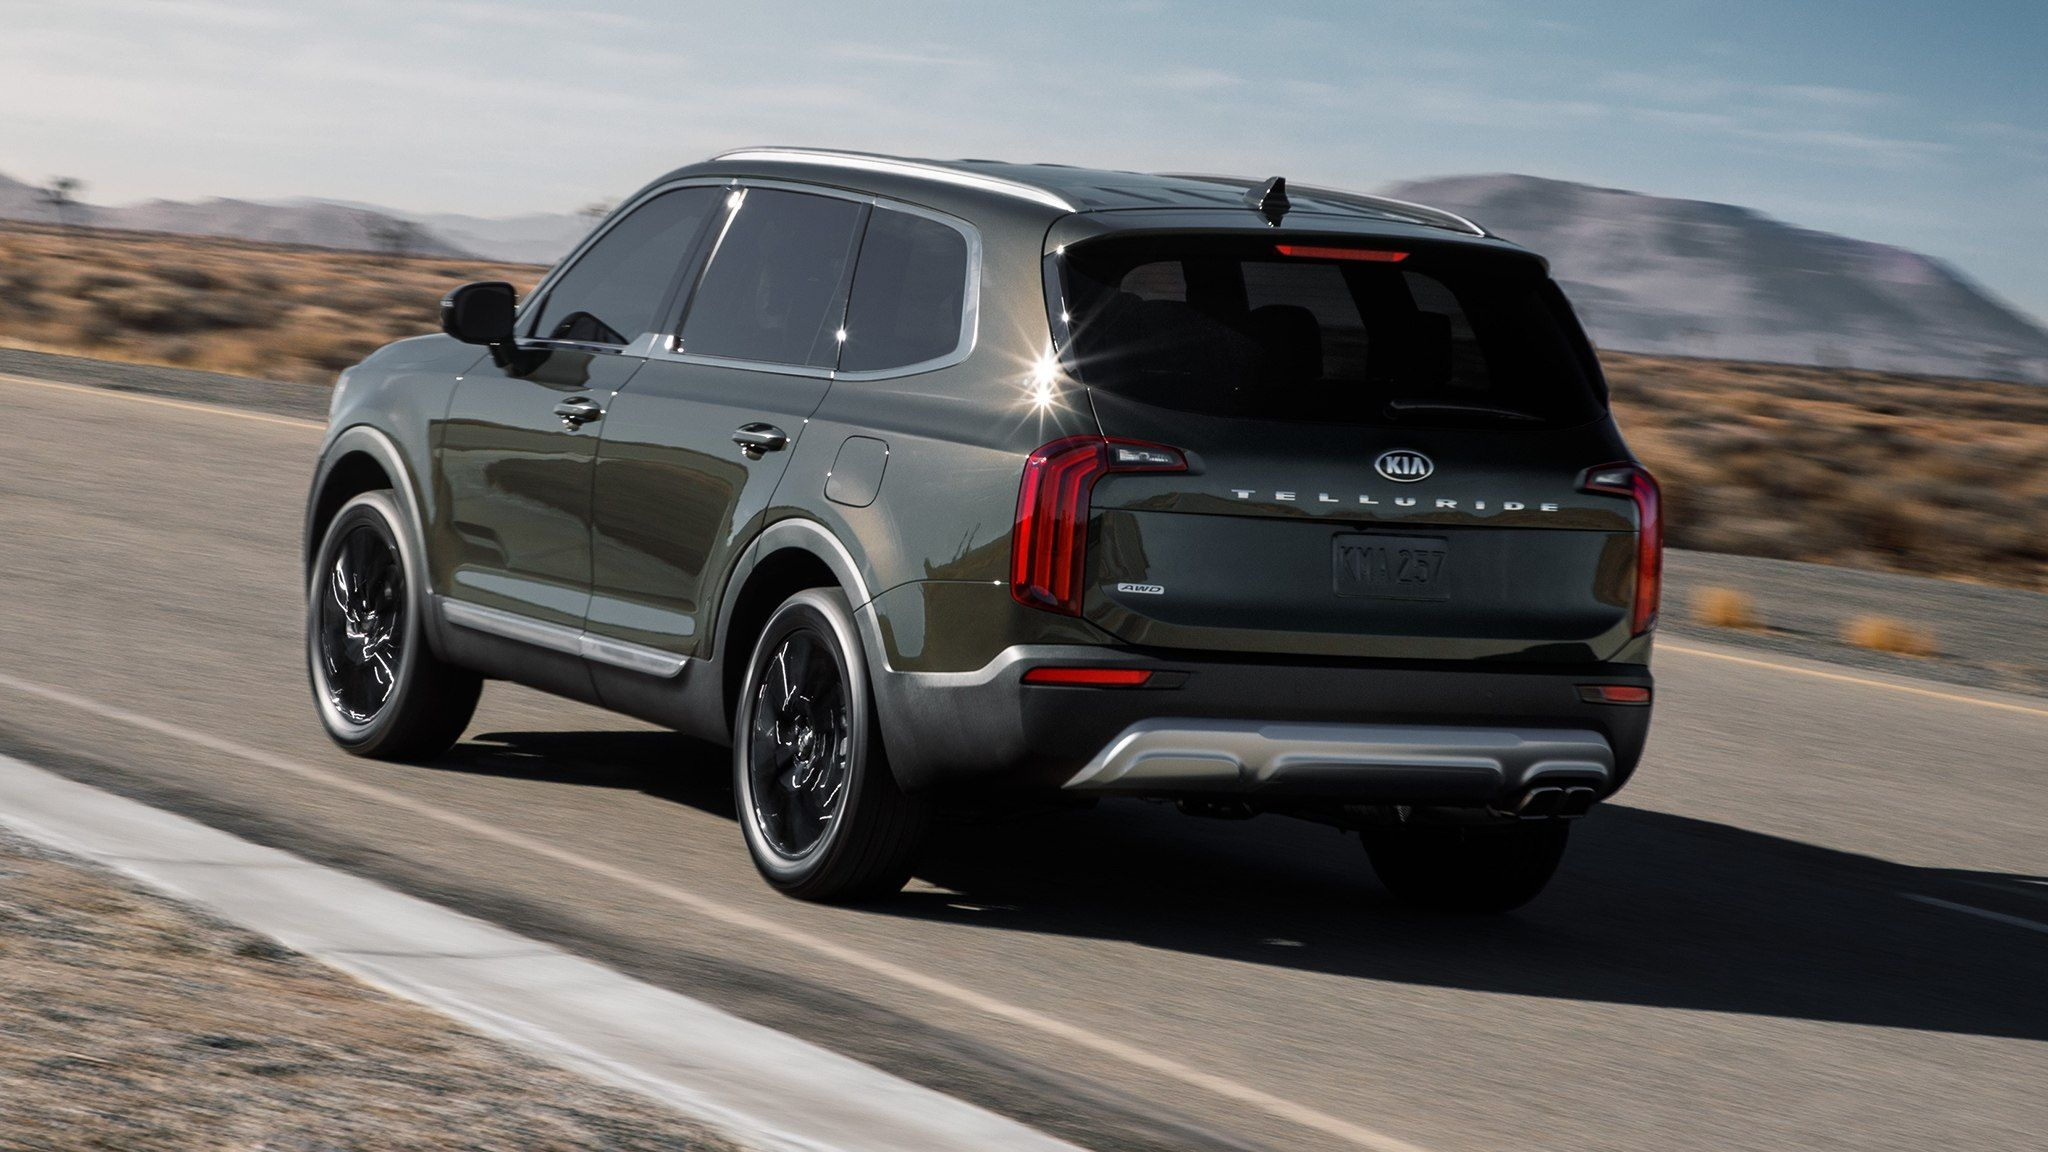 The 2020 Kia Telluride Is A Handsome Three Row Suv With New Tech Automobile Magazine Luxury Suv Best Midsize Suv Suv